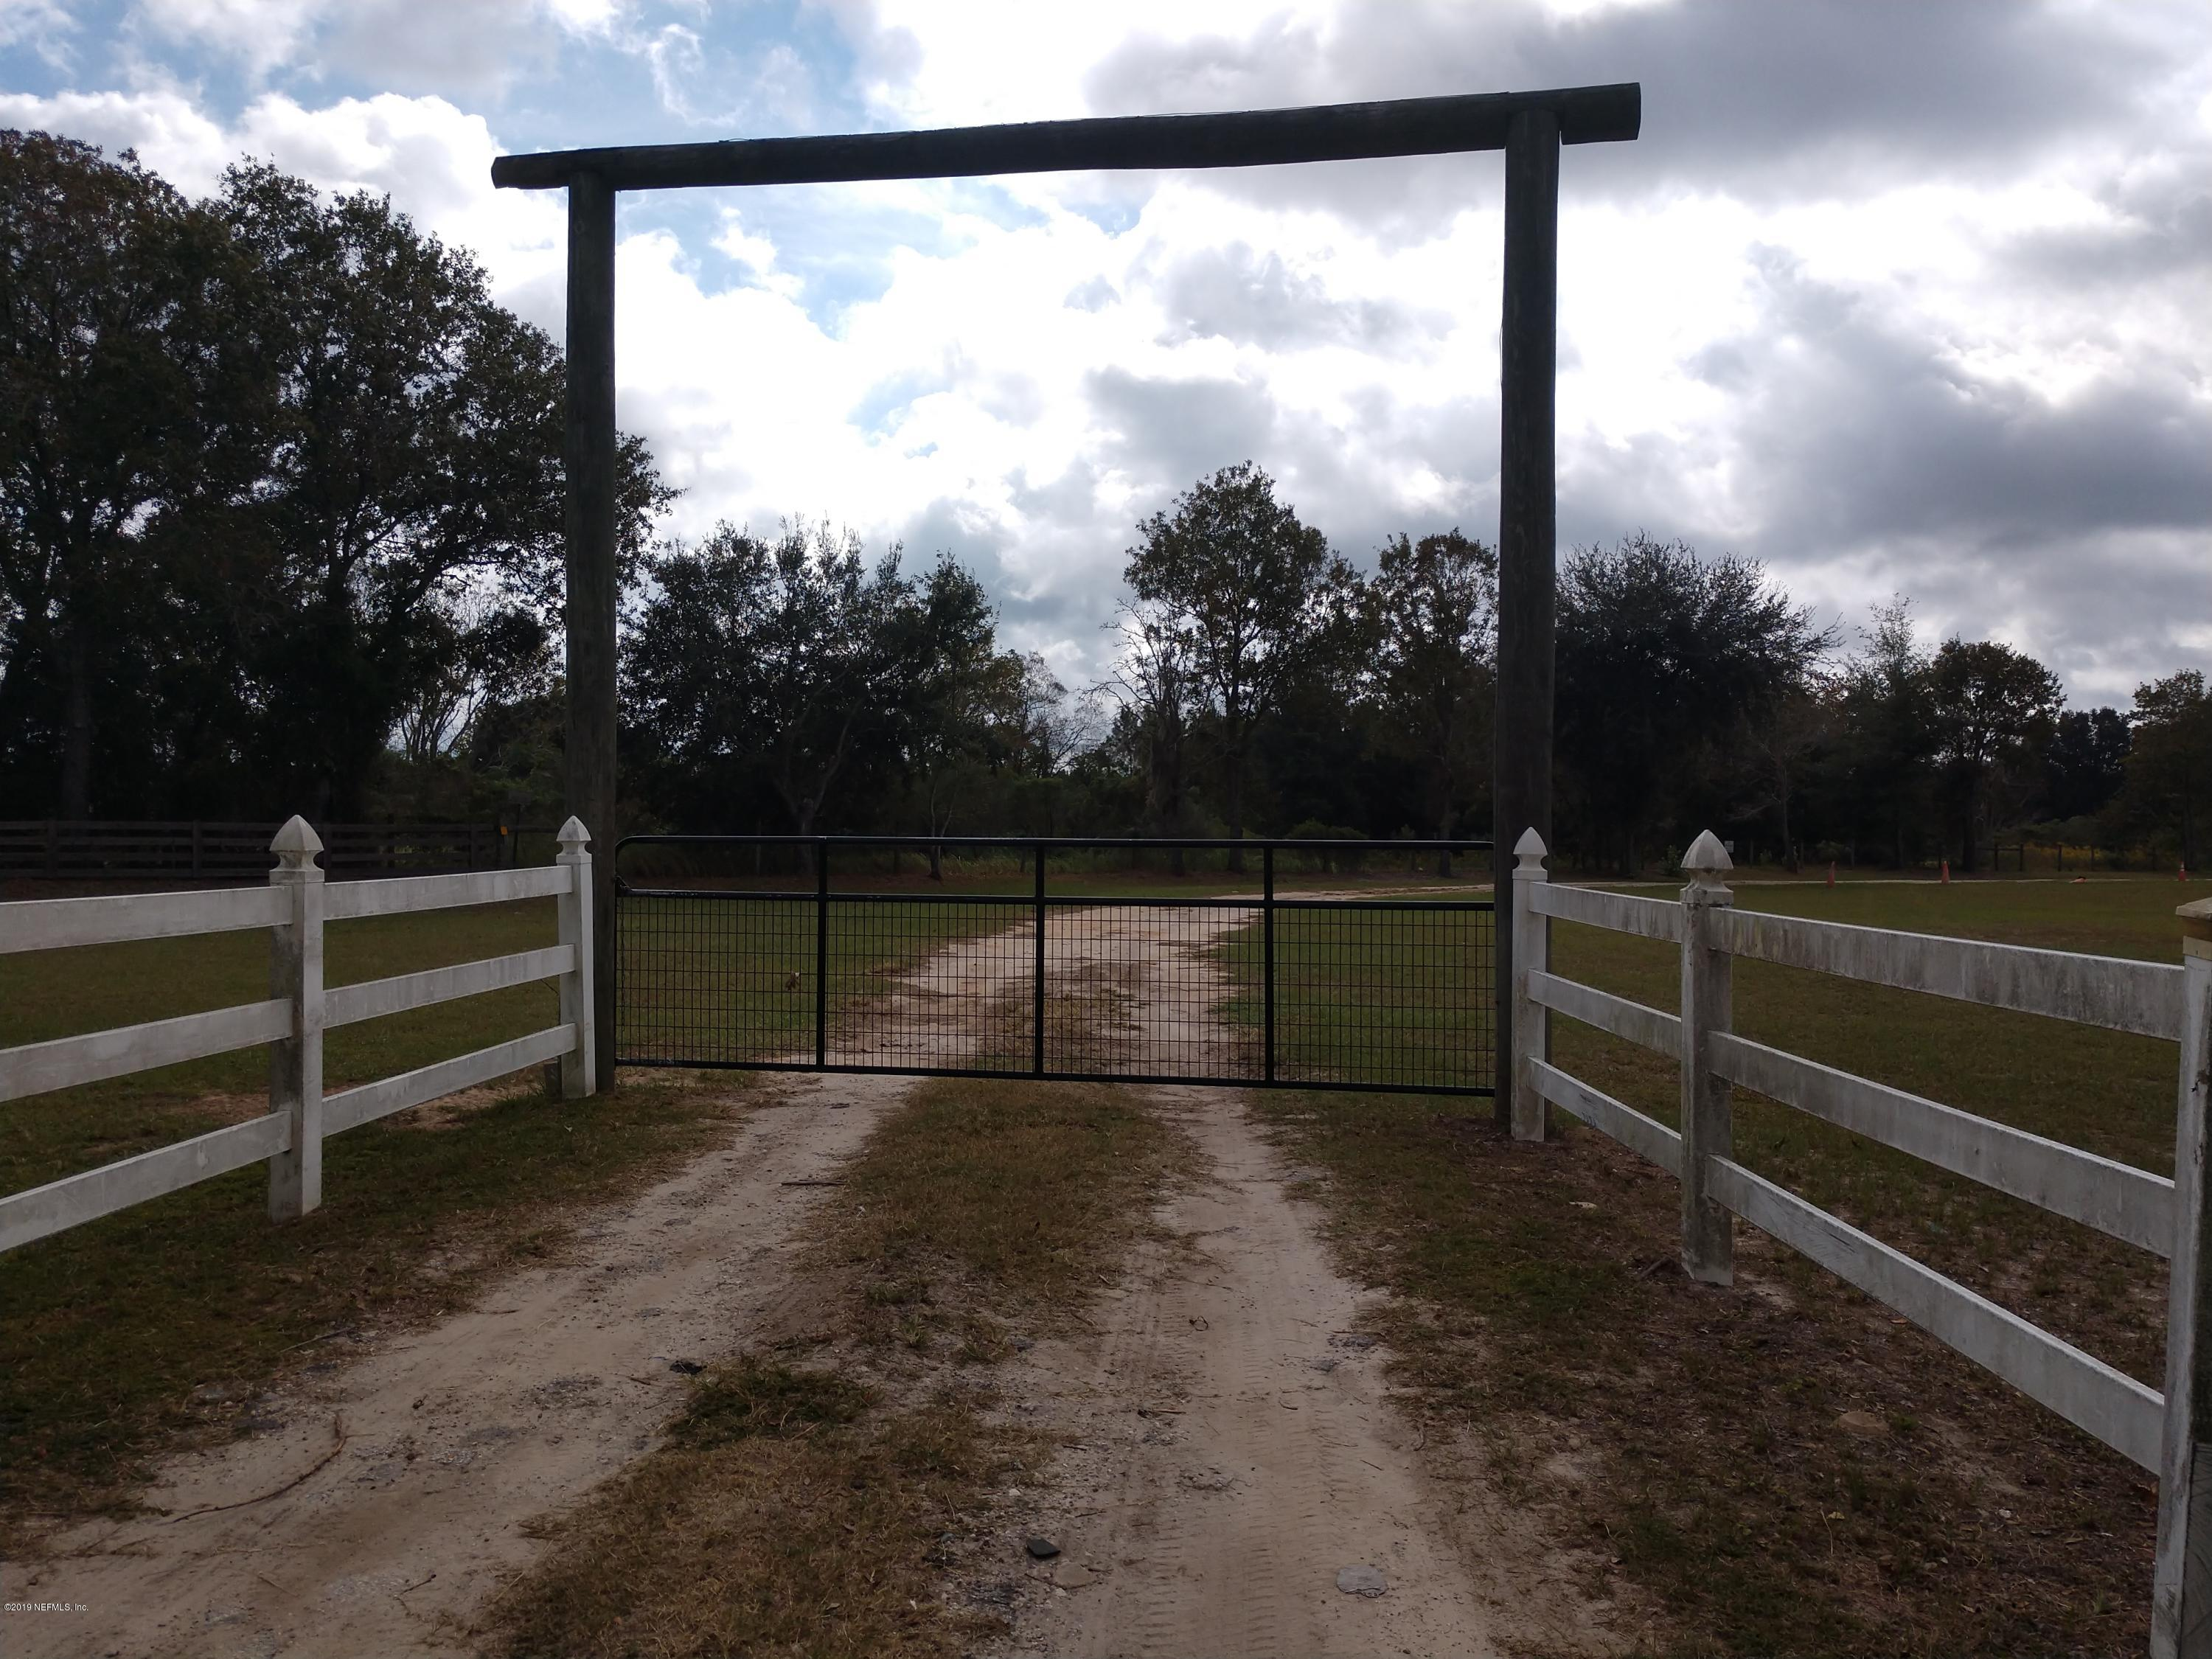 5411 STATE RD 21, KEYSTONE HEIGHTS, FLORIDA 32656, 3 Bedrooms Bedrooms, ,3 BathroomsBathrooms,Residential,For sale,STATE RD 21,1020162